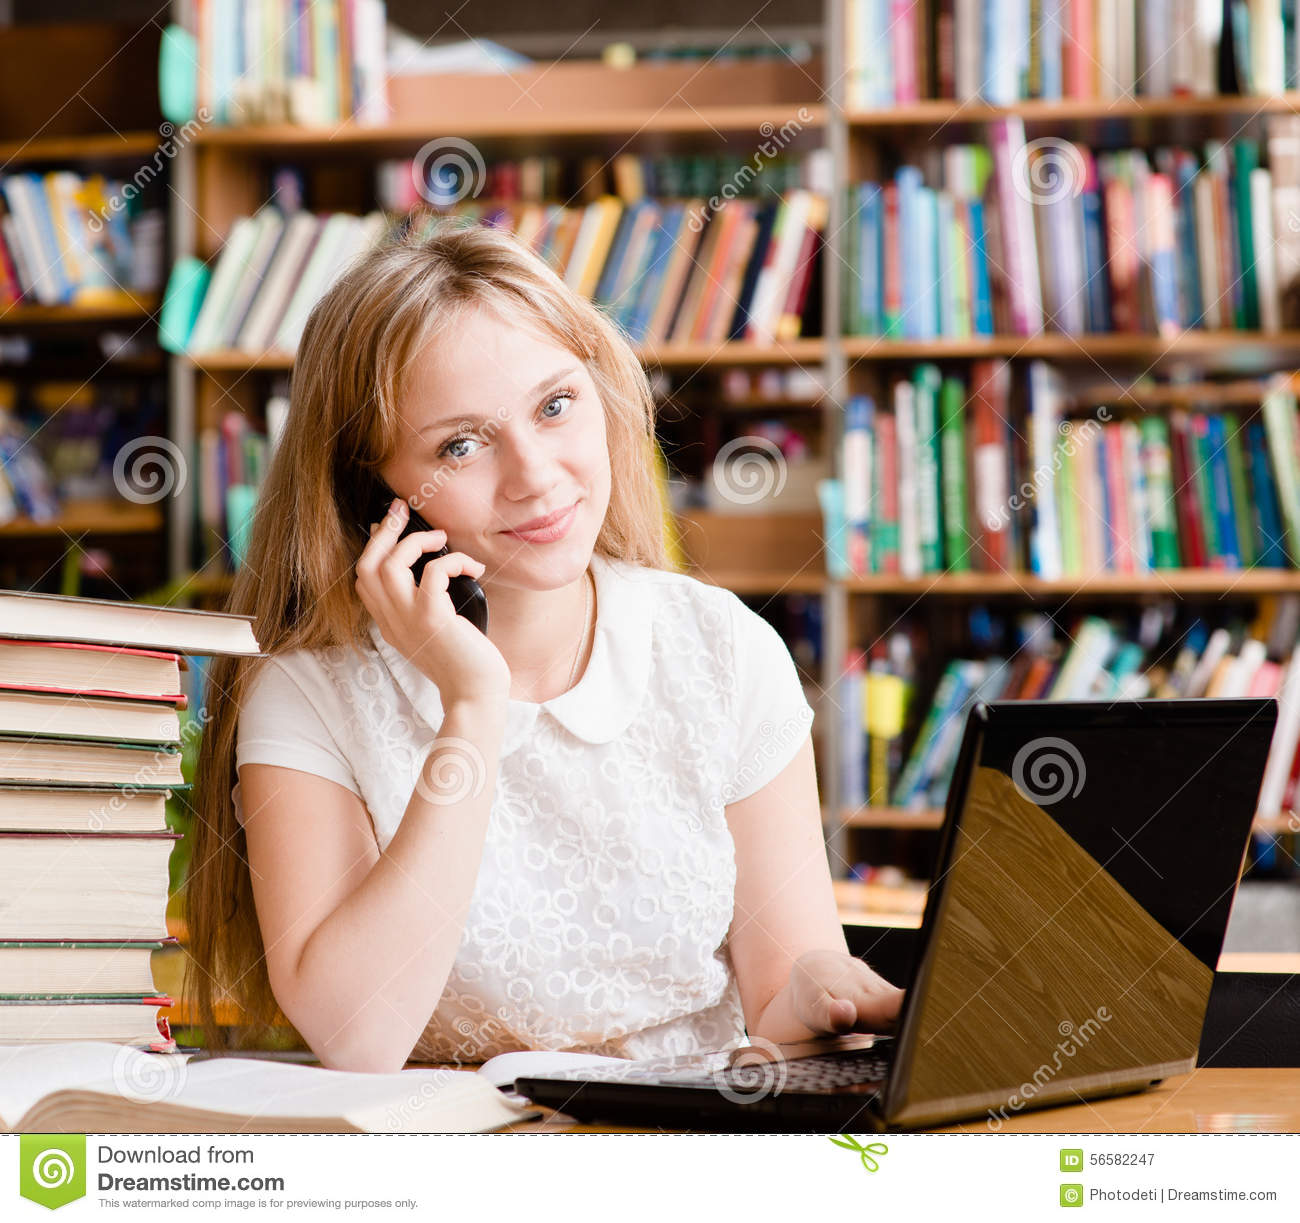 Image Result For Woman Student Library